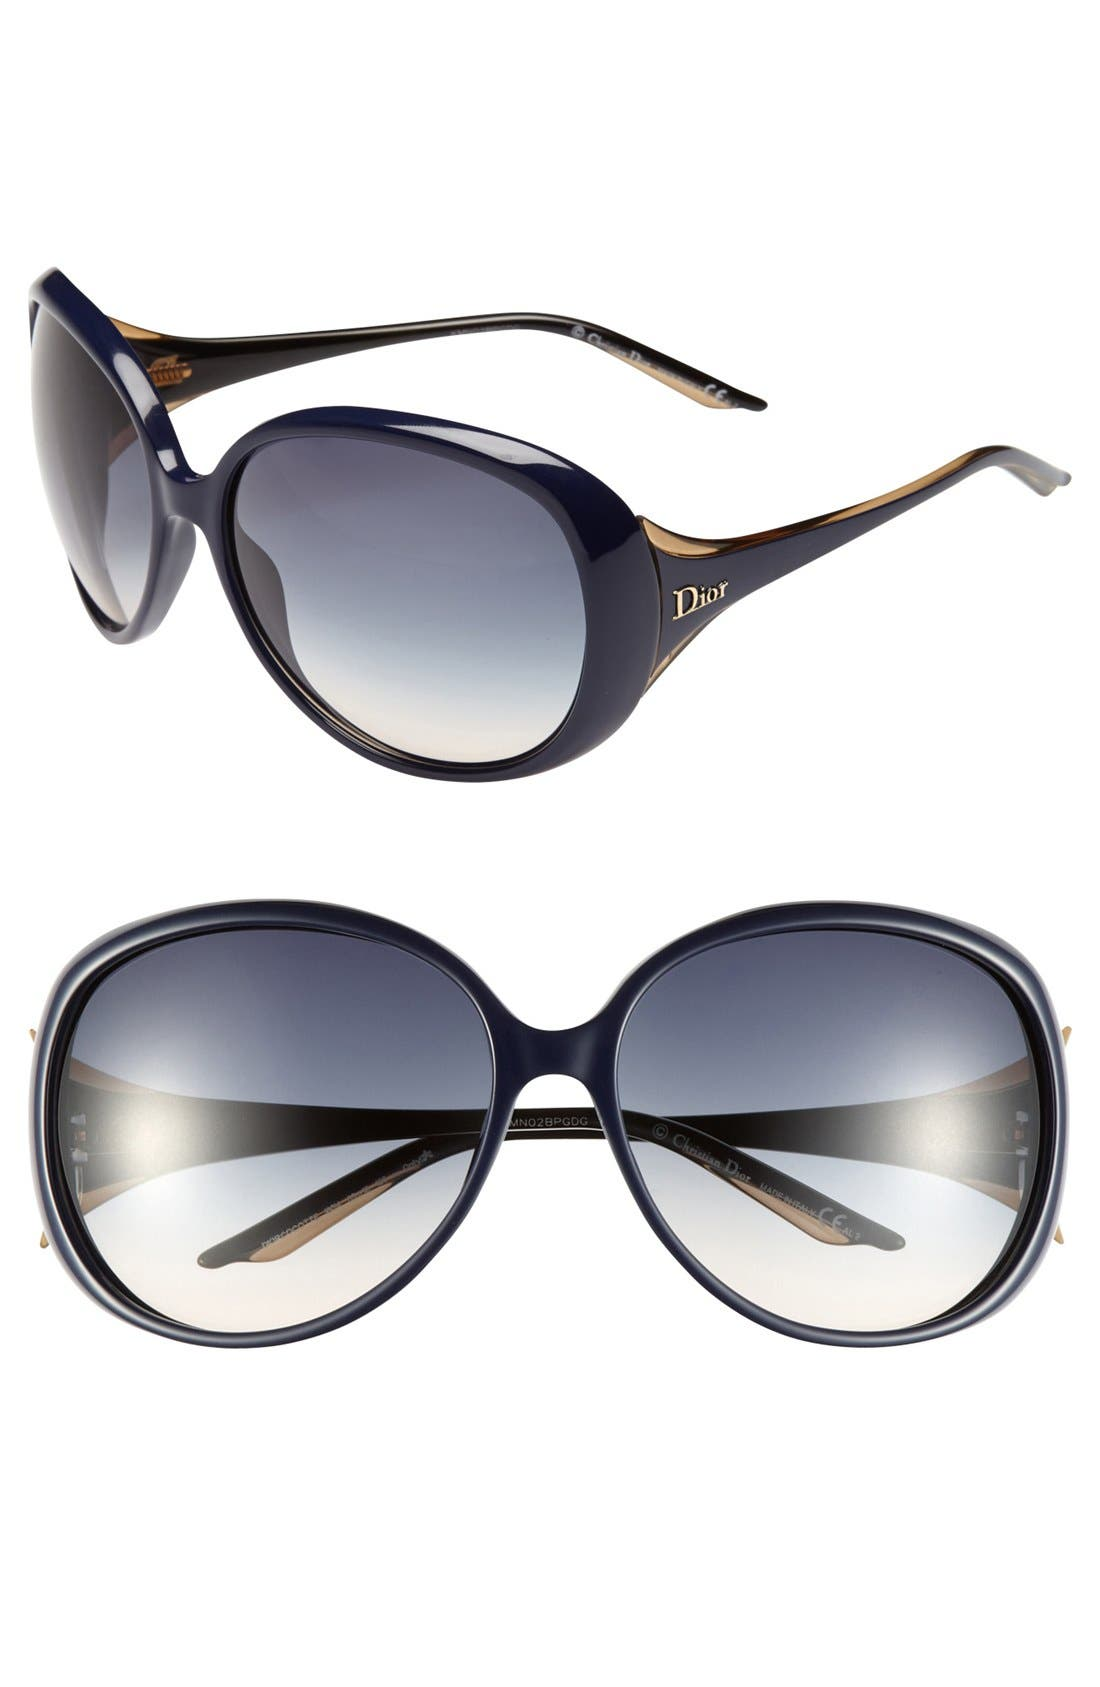 Alternate Image 1 Selected - Dior 'Cocotte' 63mm Oversized Sunglasses